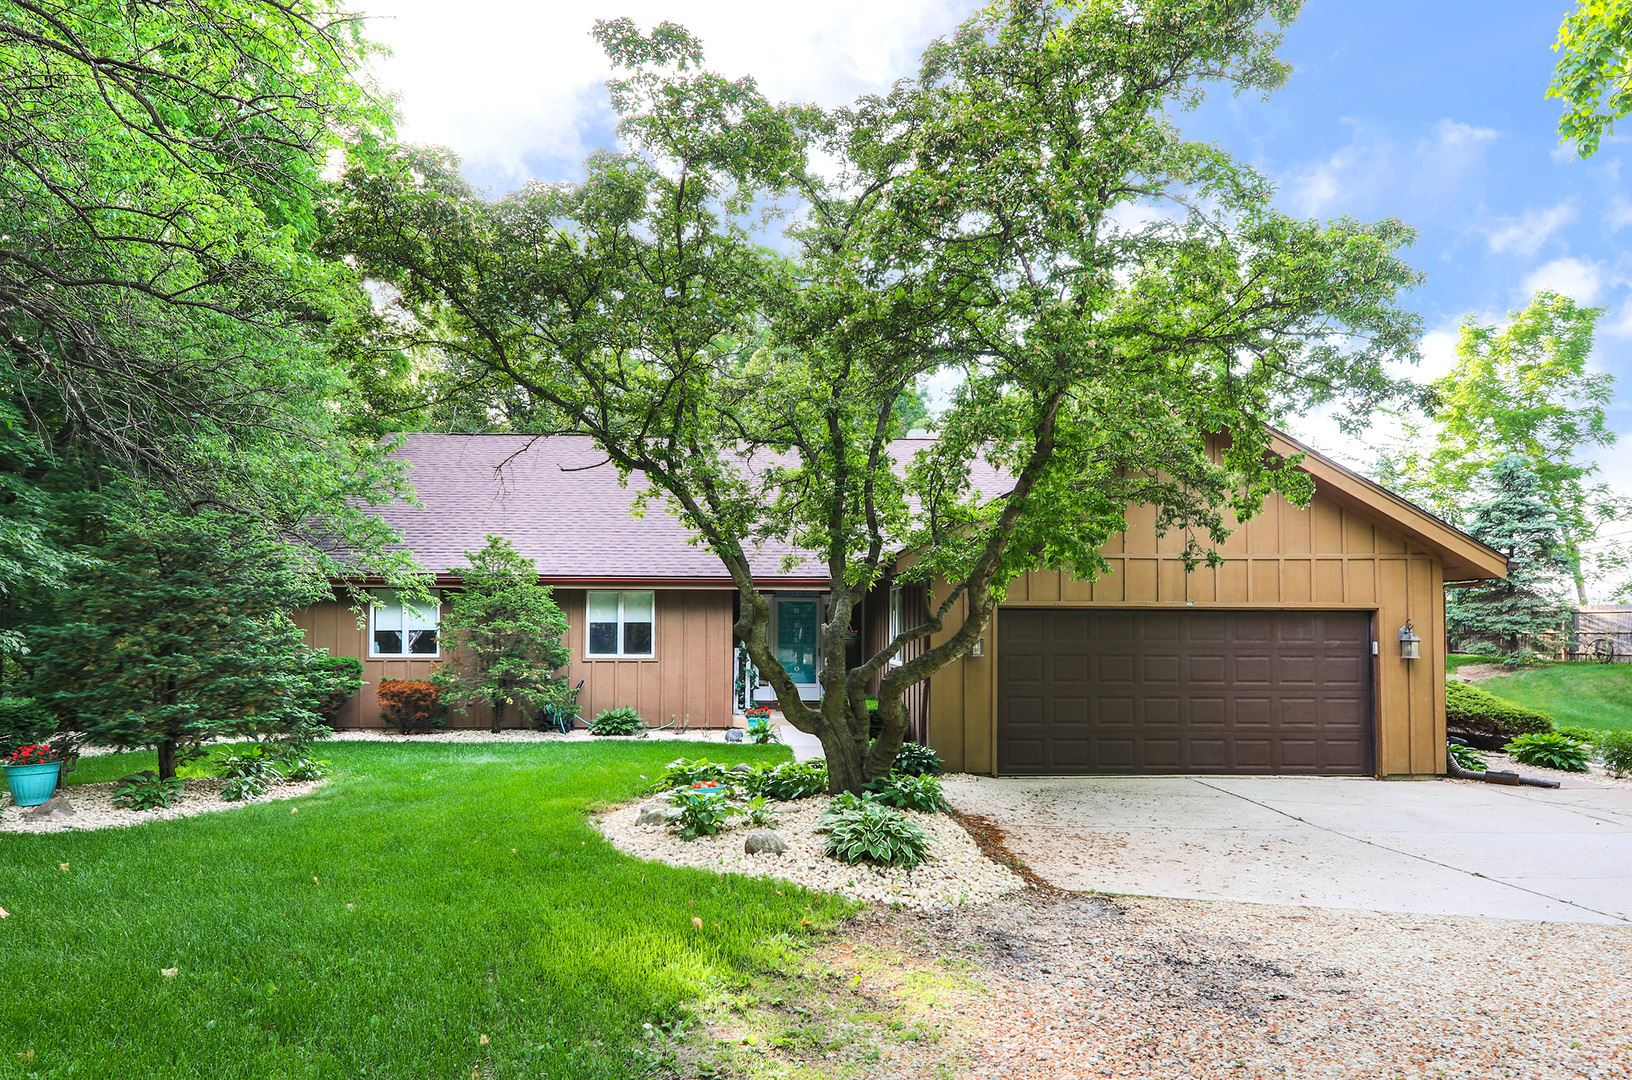 6 CROOKED CREEK Drive, Yorkville, IL 60560 - #: 10667174